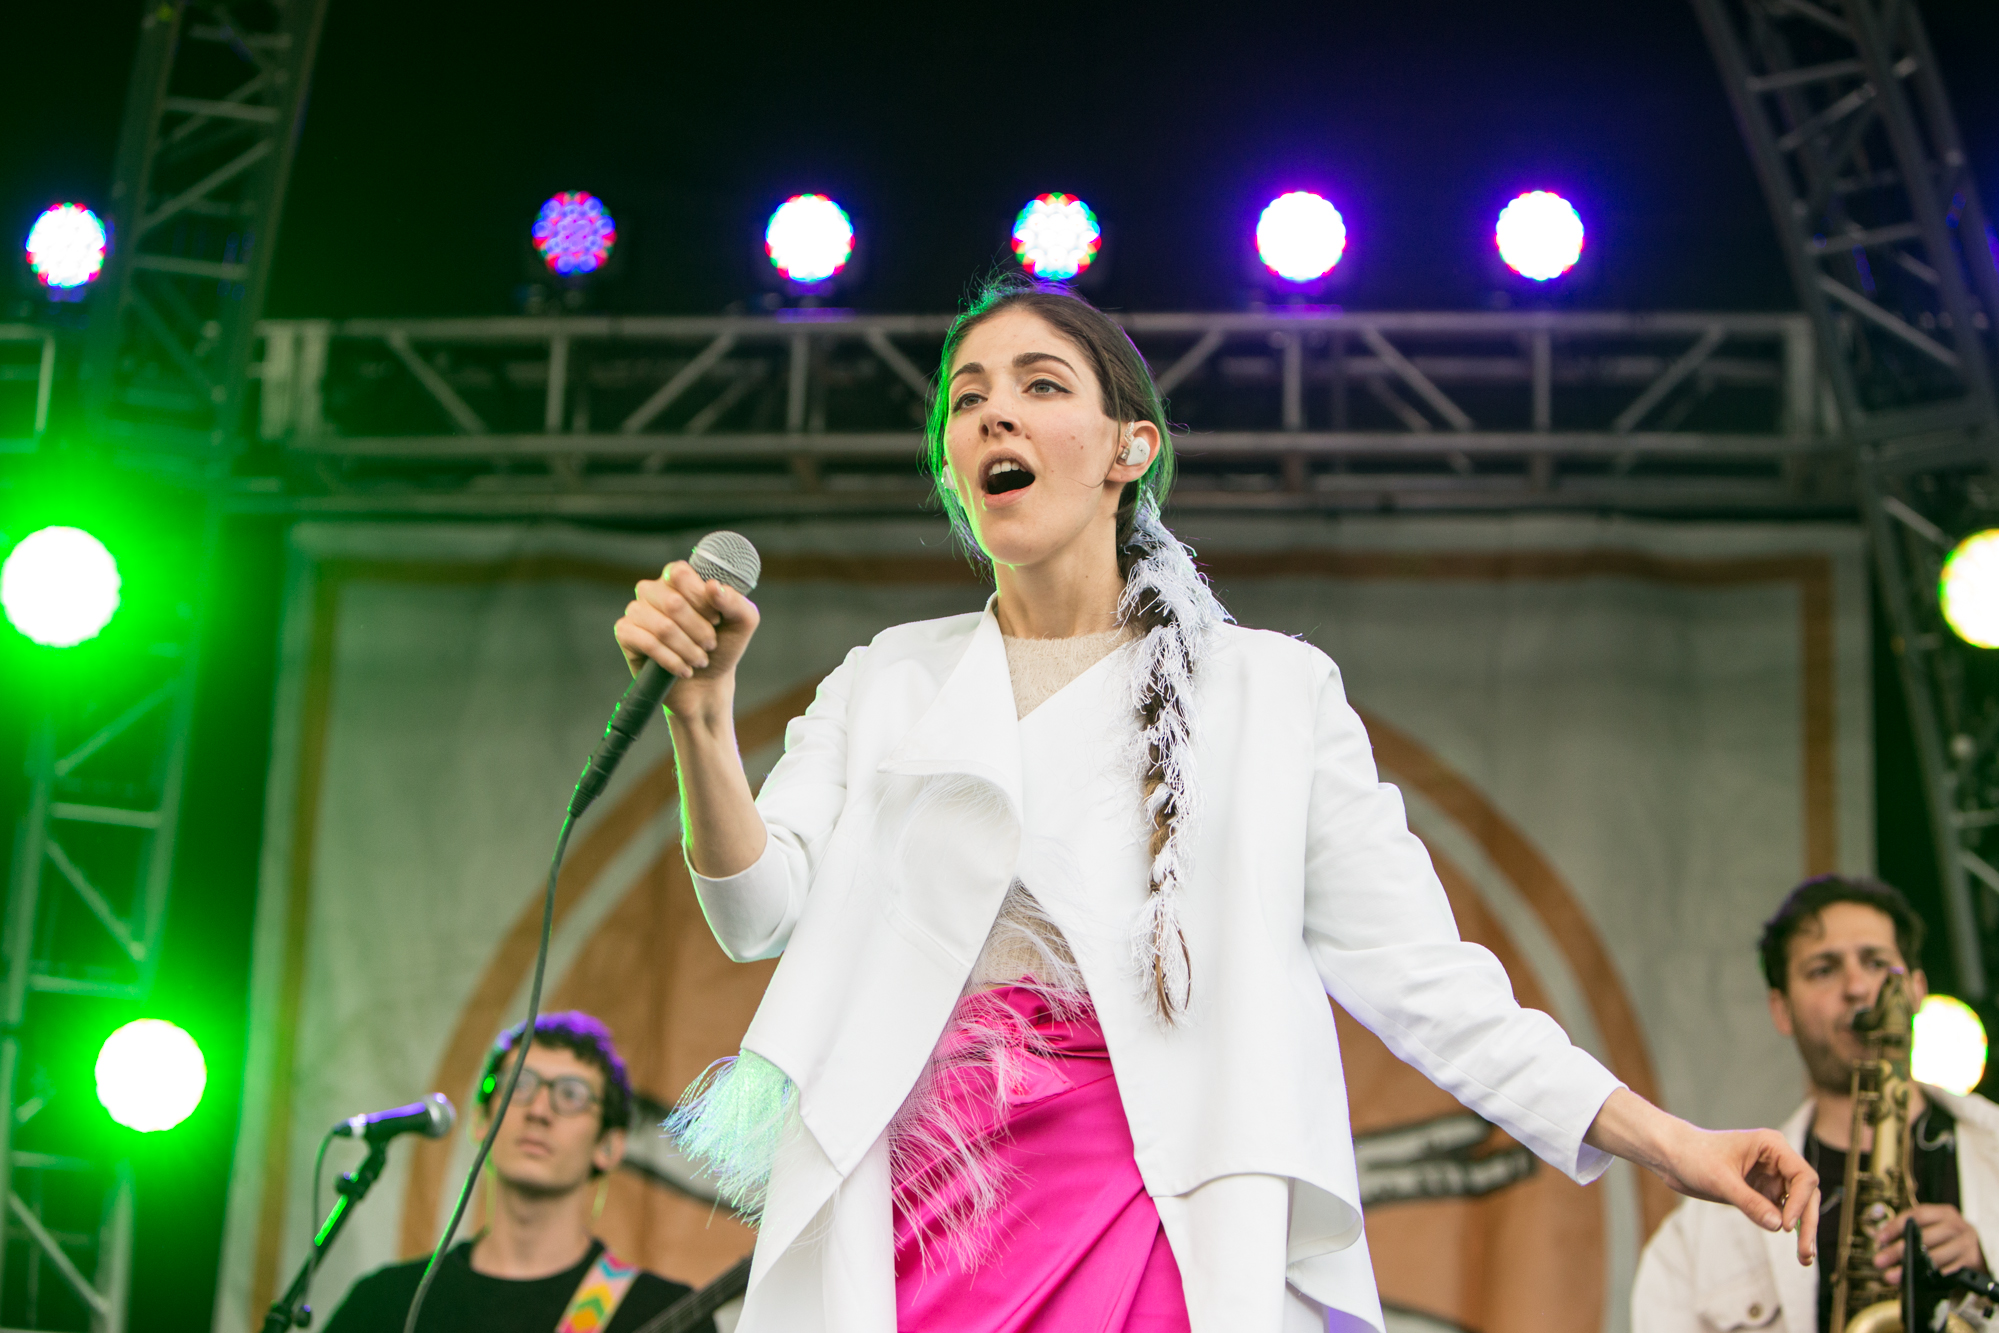 Chairlift // Photo by Philip Cosores